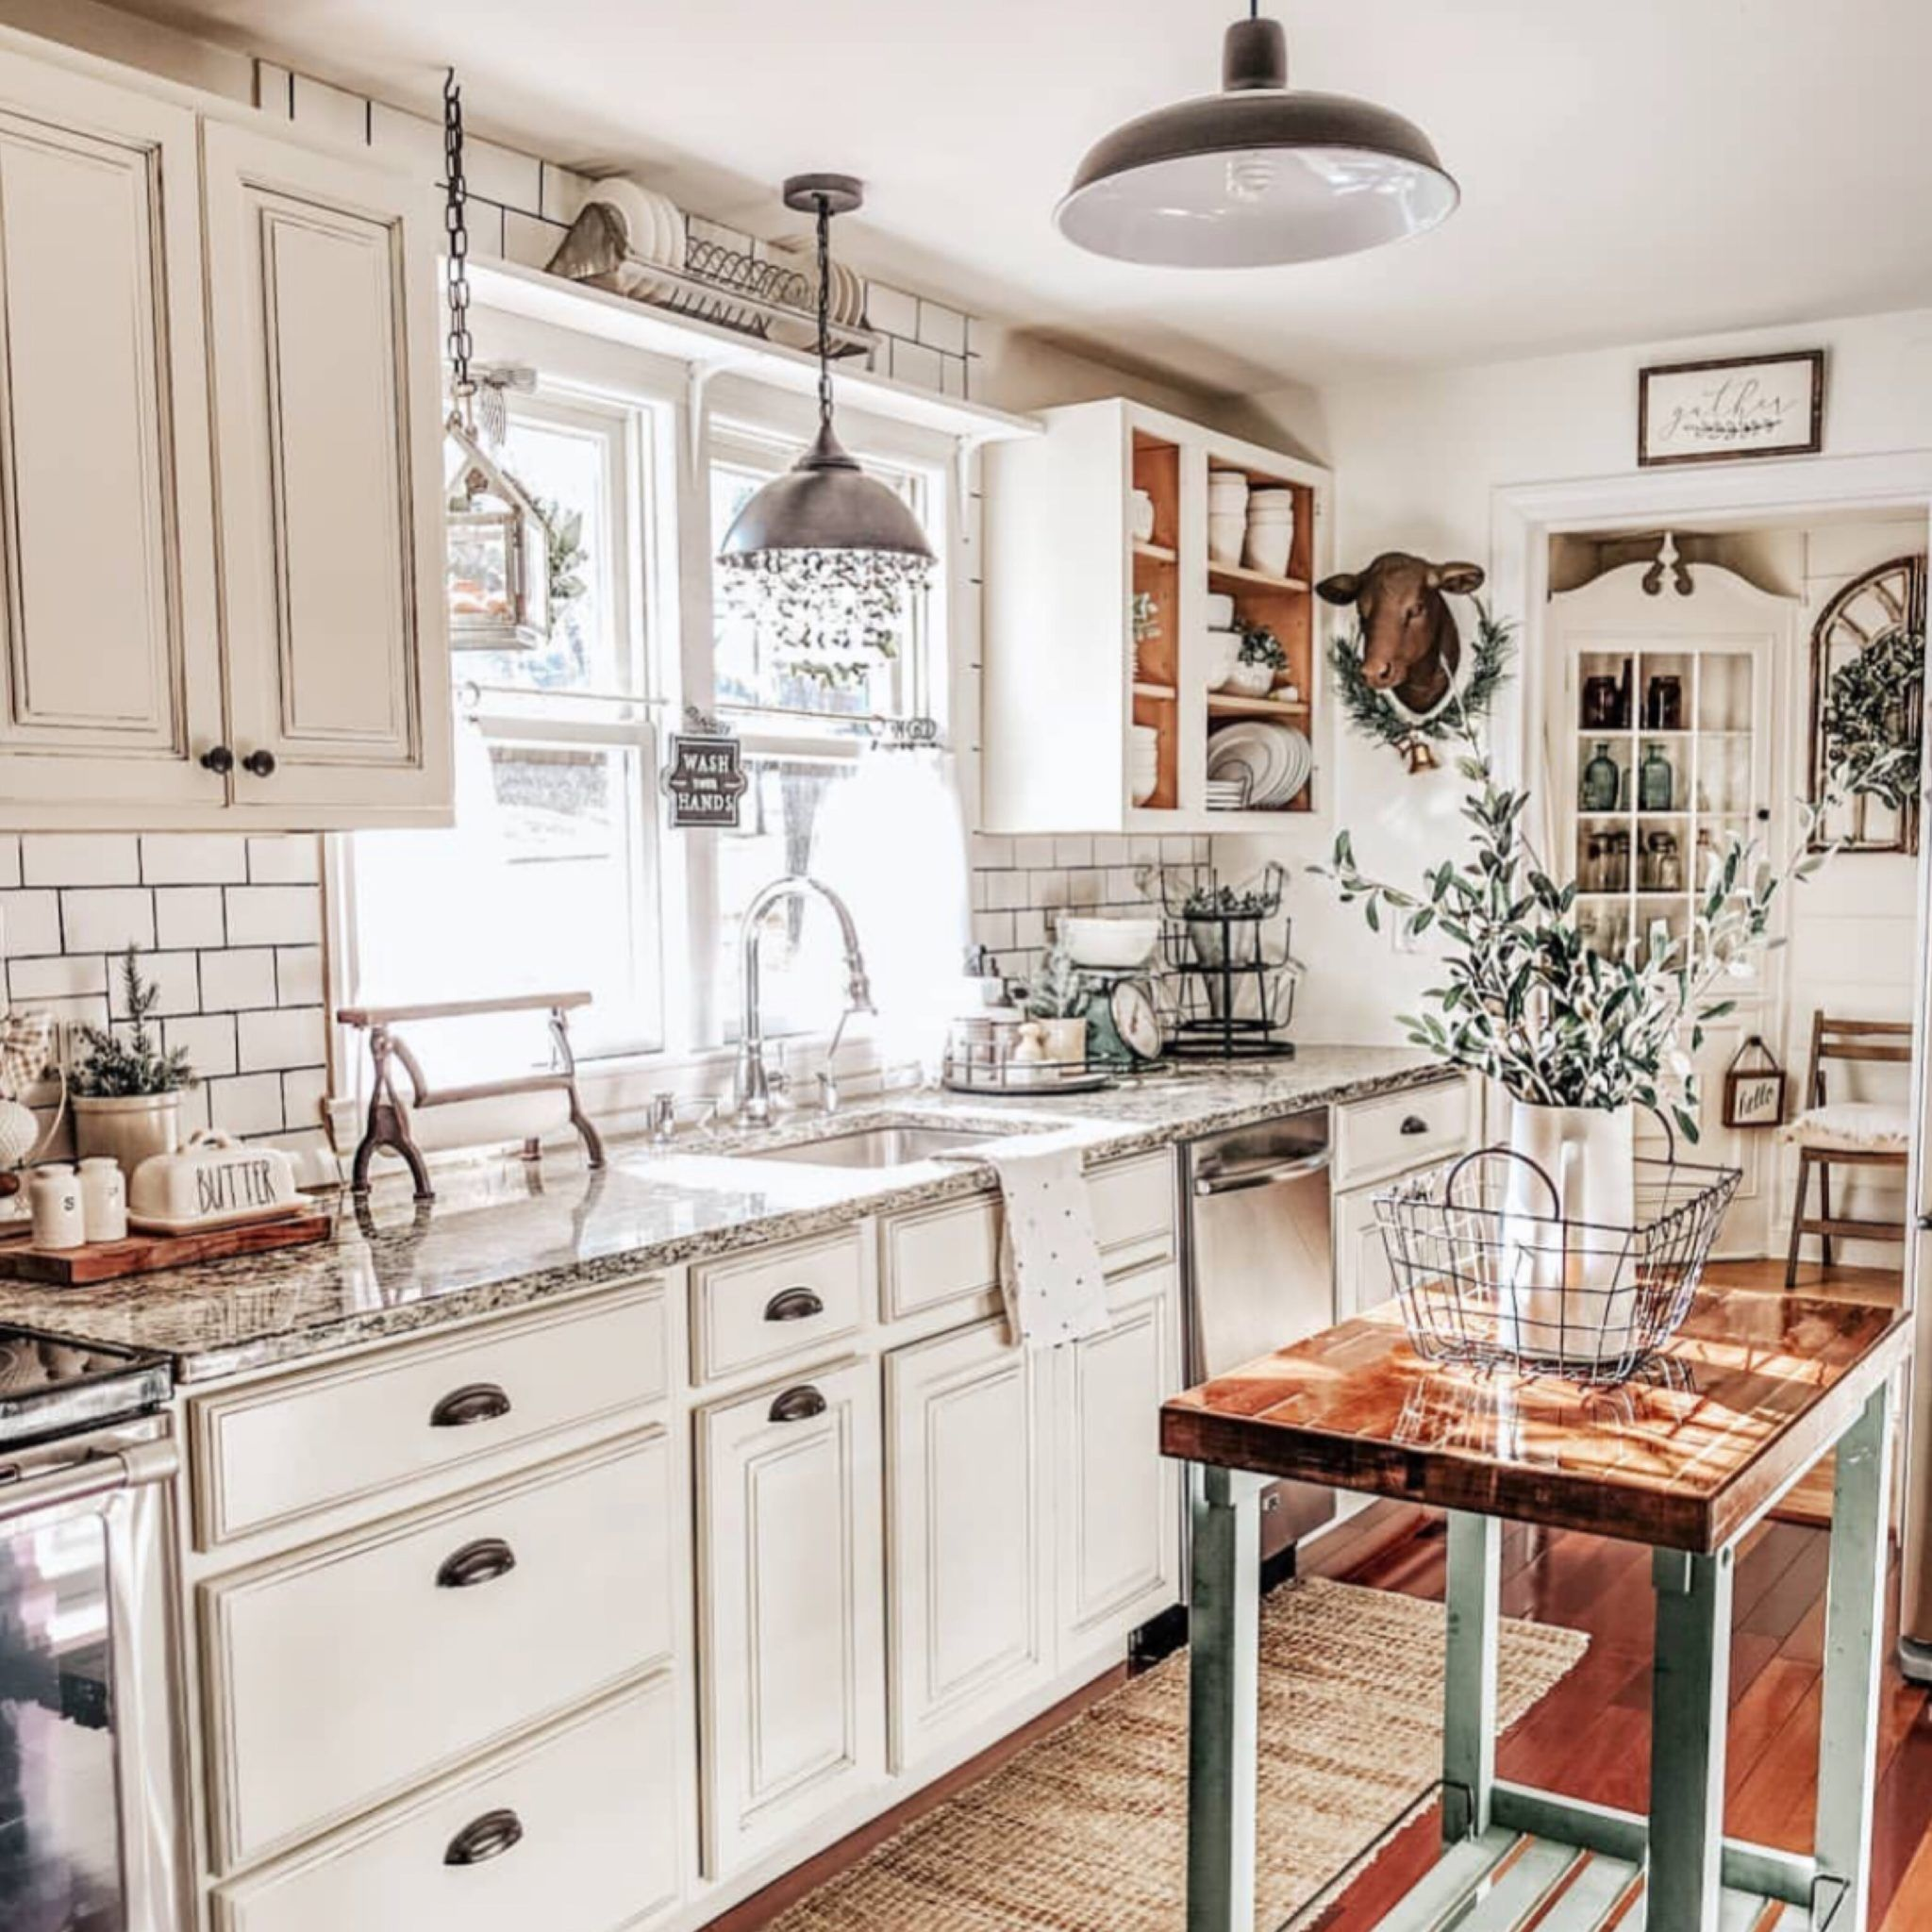 40 Of The Best Home Decor Blogs That Will Inspire You Farmhouse Style Kitchen Kitchen Design Farmhouse Kitchen Design